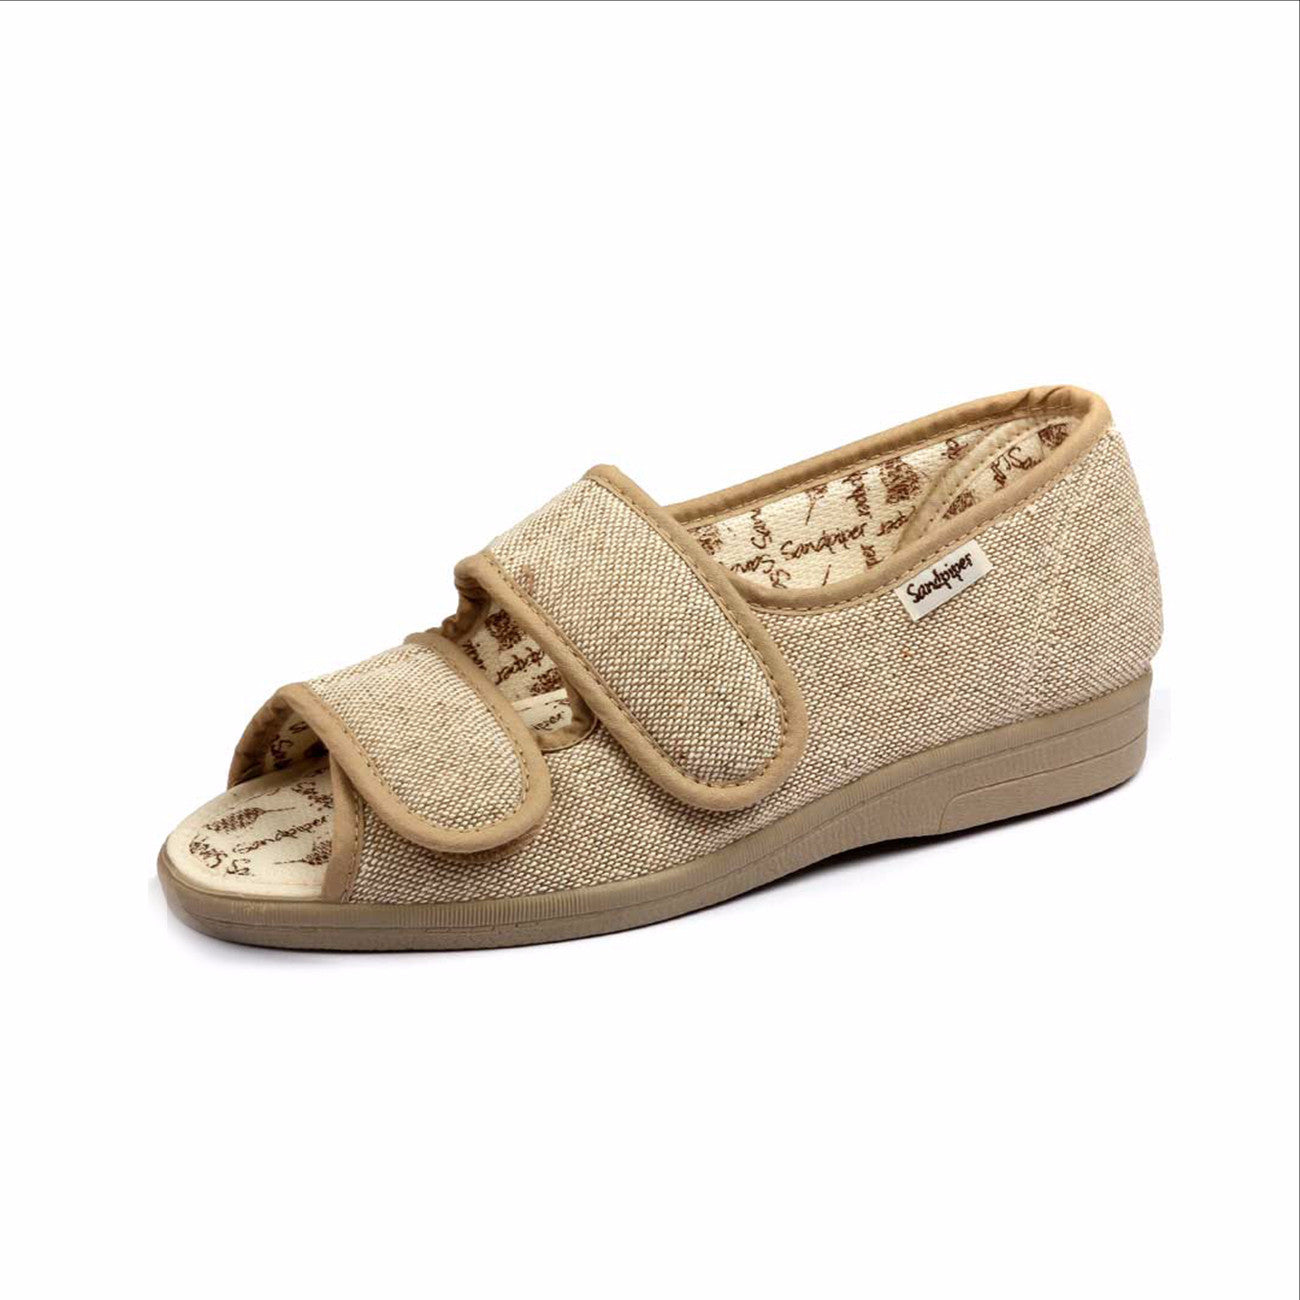 45846335a0c Ladies Sandpiper Dora Wide Fitting Sandal 6E Fitting – North East ...